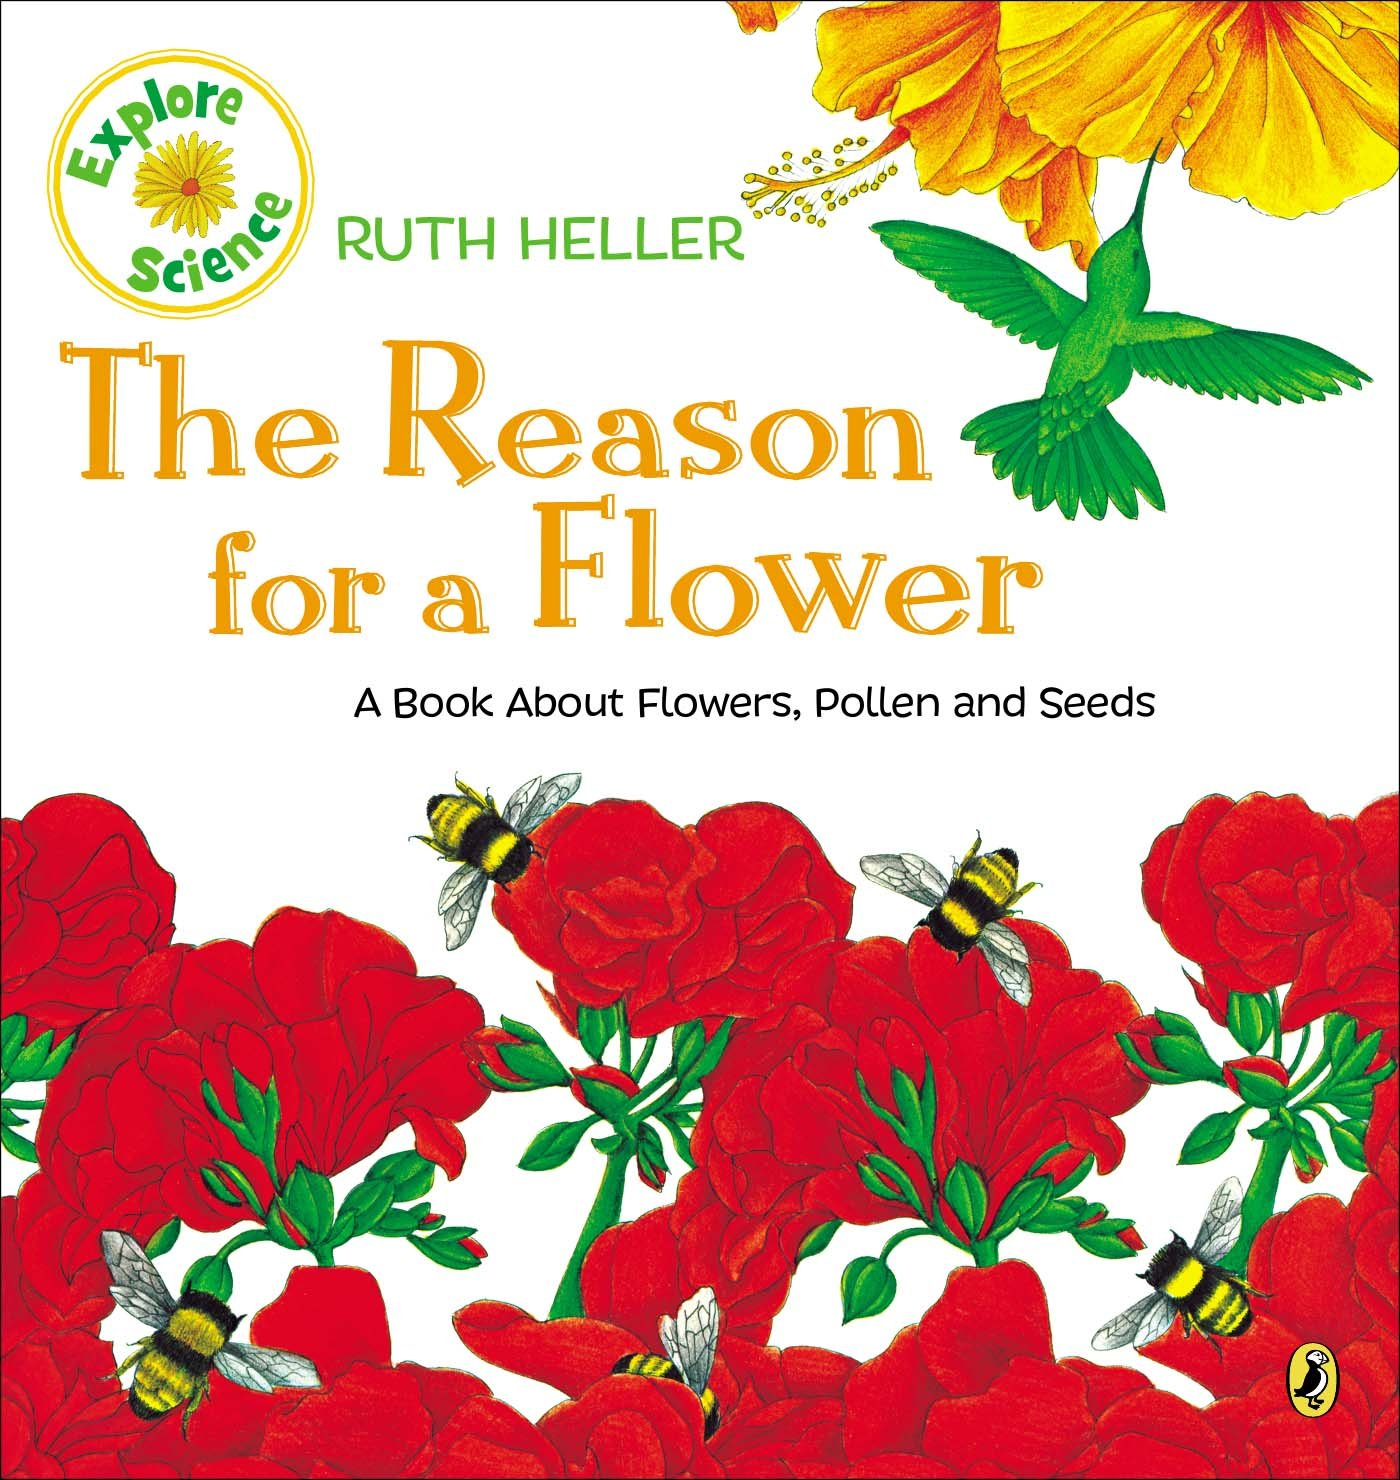 Charming Fashion Coloring Book Huge For Colored Girls Book Clean Creative Coloring Books Dia De Los Muertos Coloring Book Old Hello Kitty Coloring Books ColouredMosaic Coloring Books The Reason For A Flower: A Book About Flowers, Pollen, And Seeds ..